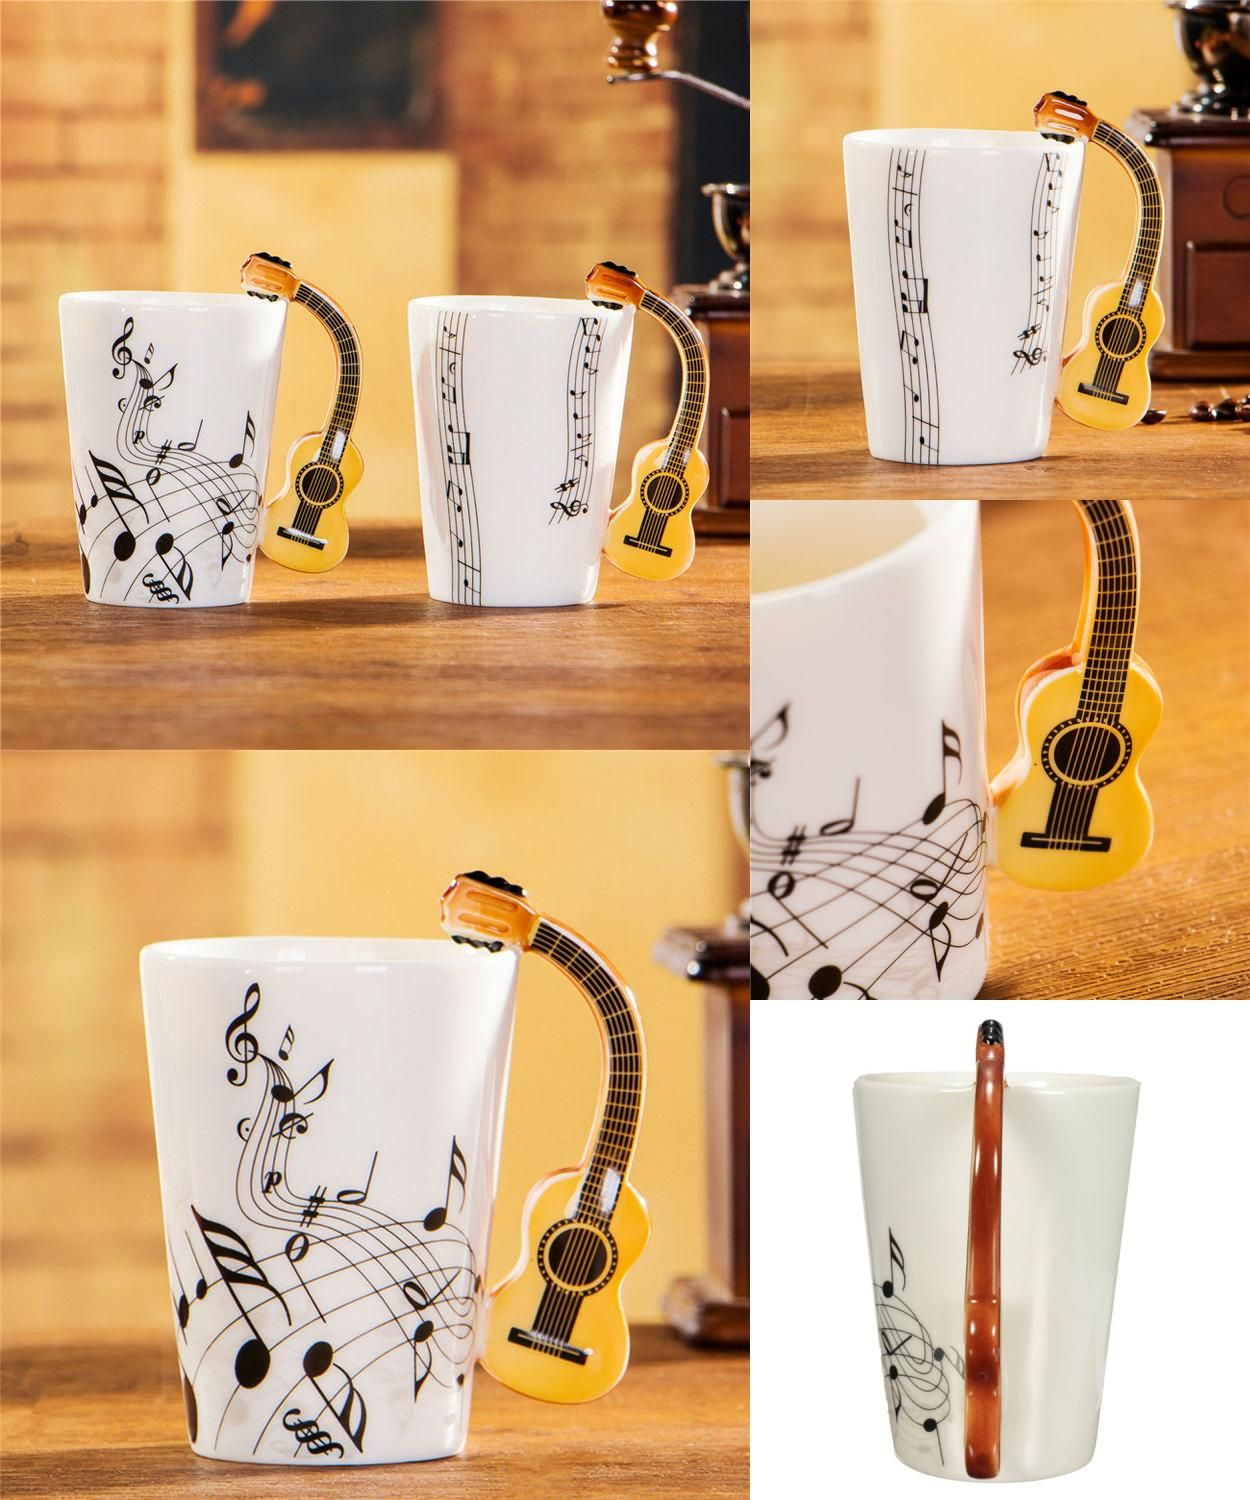 [Visit to Buy] Set of 2 Novelty Acoustic Guitar Ceramic Coffee Mugs Creative Music Note Milk Coffee Tea Cups Home Office Mugs Novelty Gifts #Advertisement